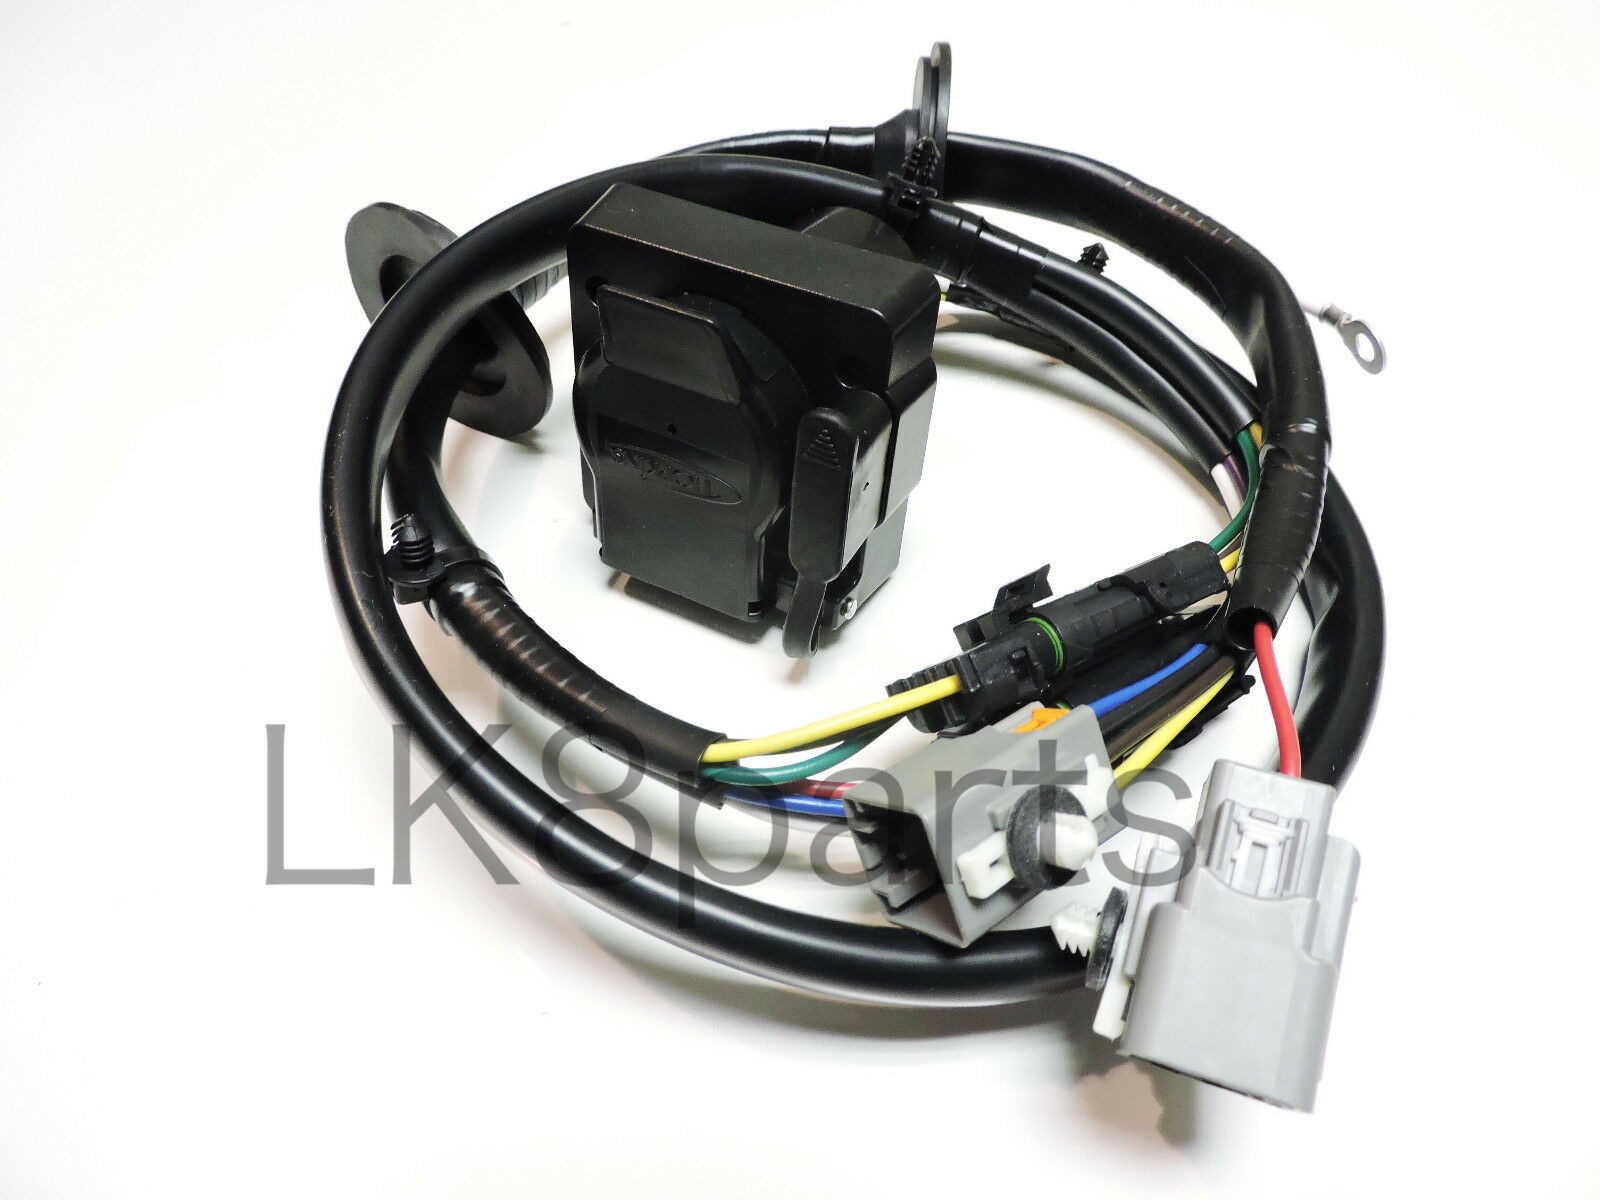 Trailer Wiring Harness Kit Free Diagram For You Lights Land Rover Lr4 Tow Hitch Wire 2013 Traverse